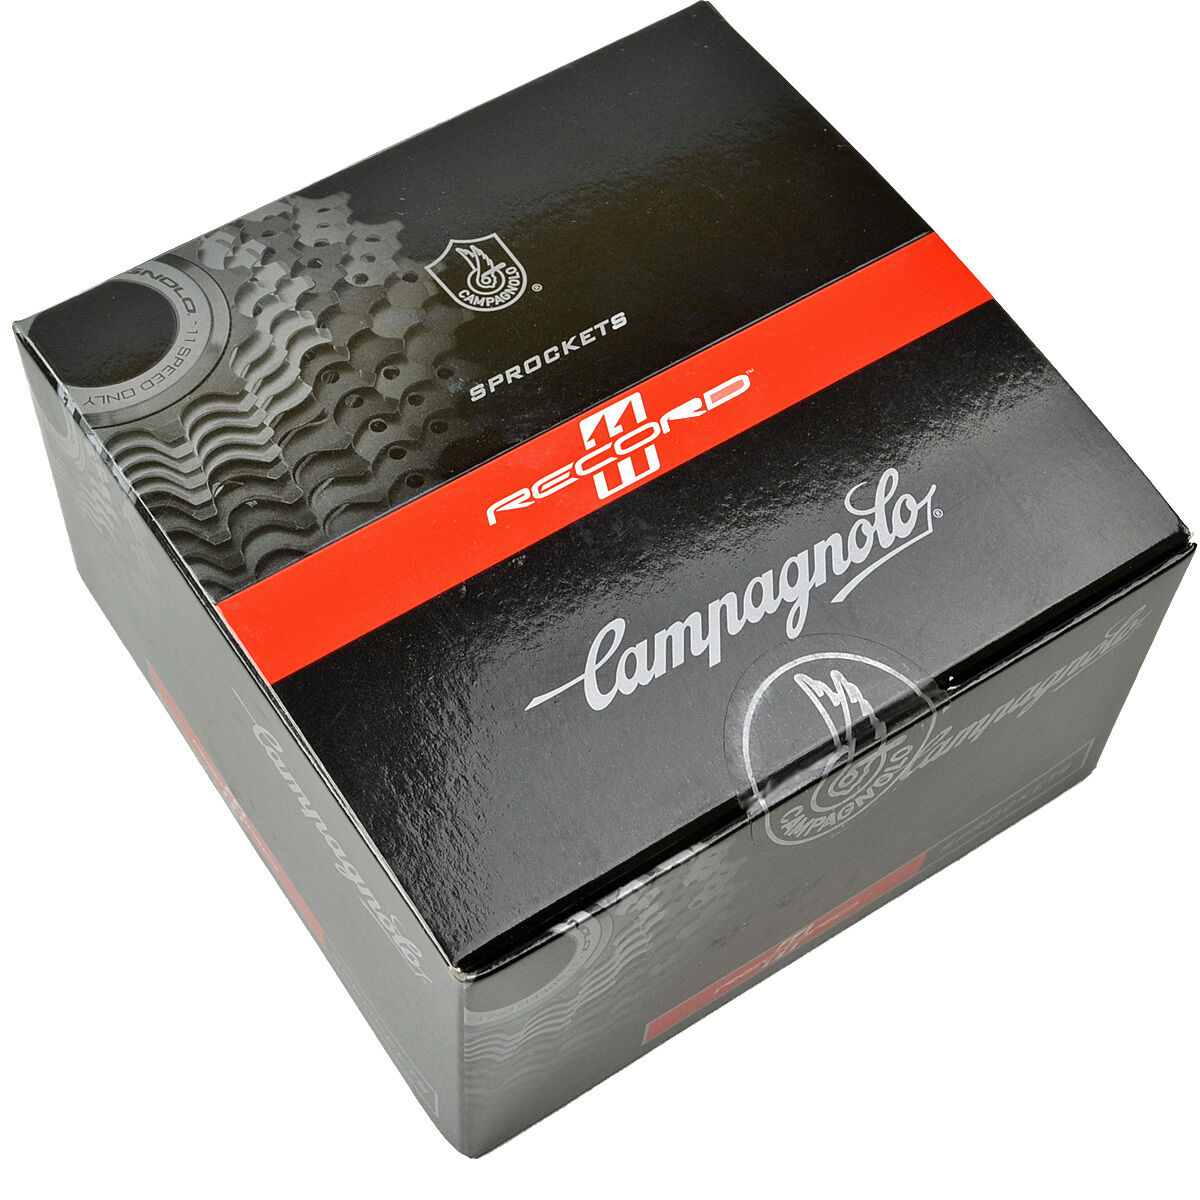 NEW 2018 Campagnolo RECORD 11 Speed Ultra Shift Cassette Fit Super Chorus  11-27